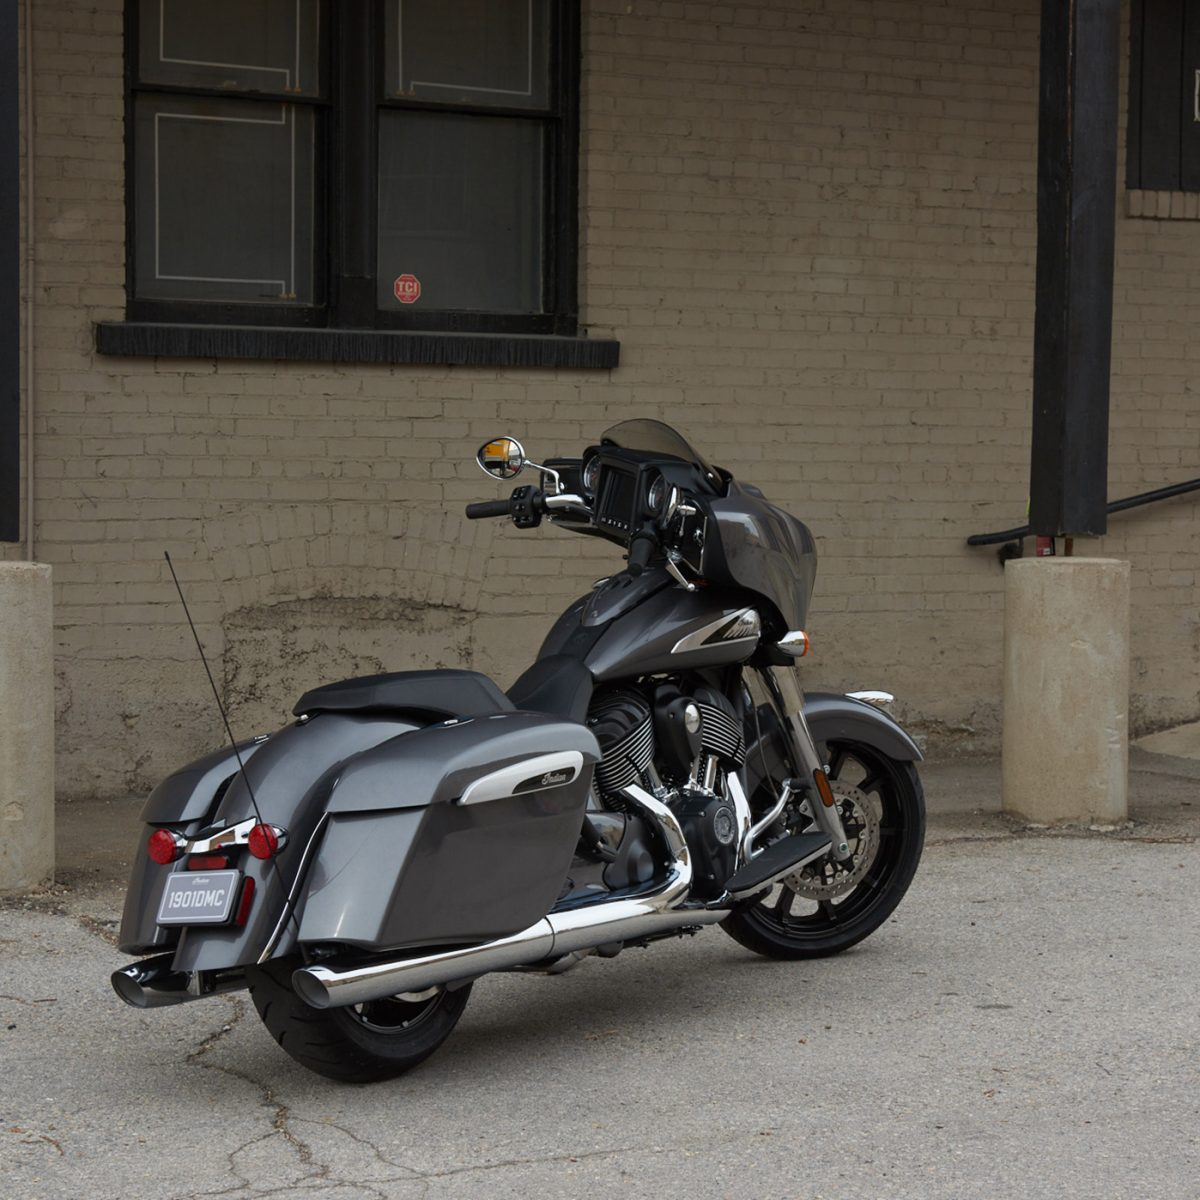 2019 Indian Chieftain3